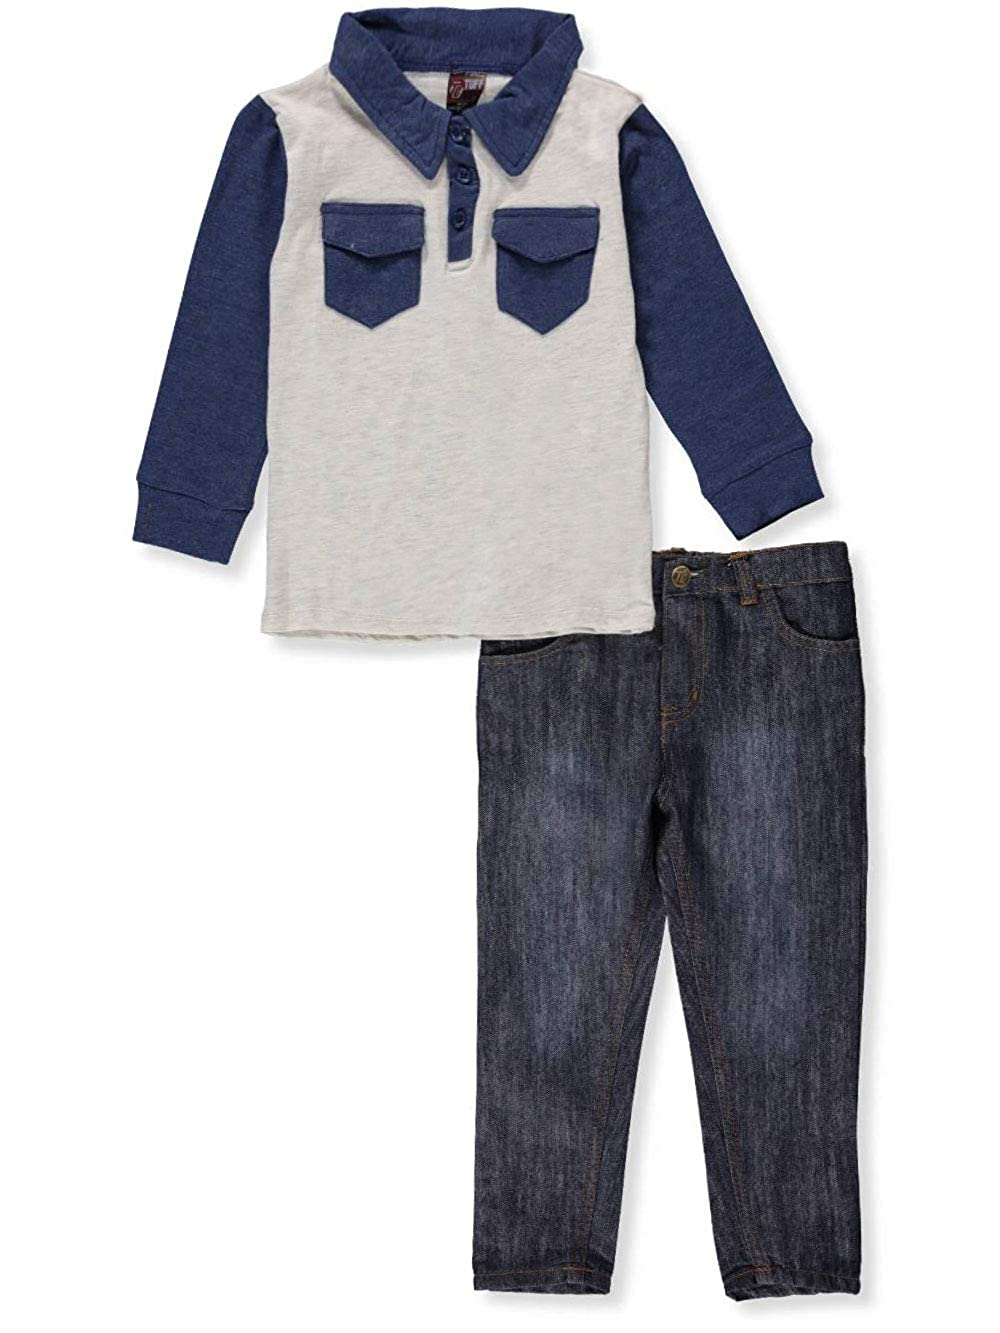 Tuff Guys Boys' 2-Piece Pants Set Outfit